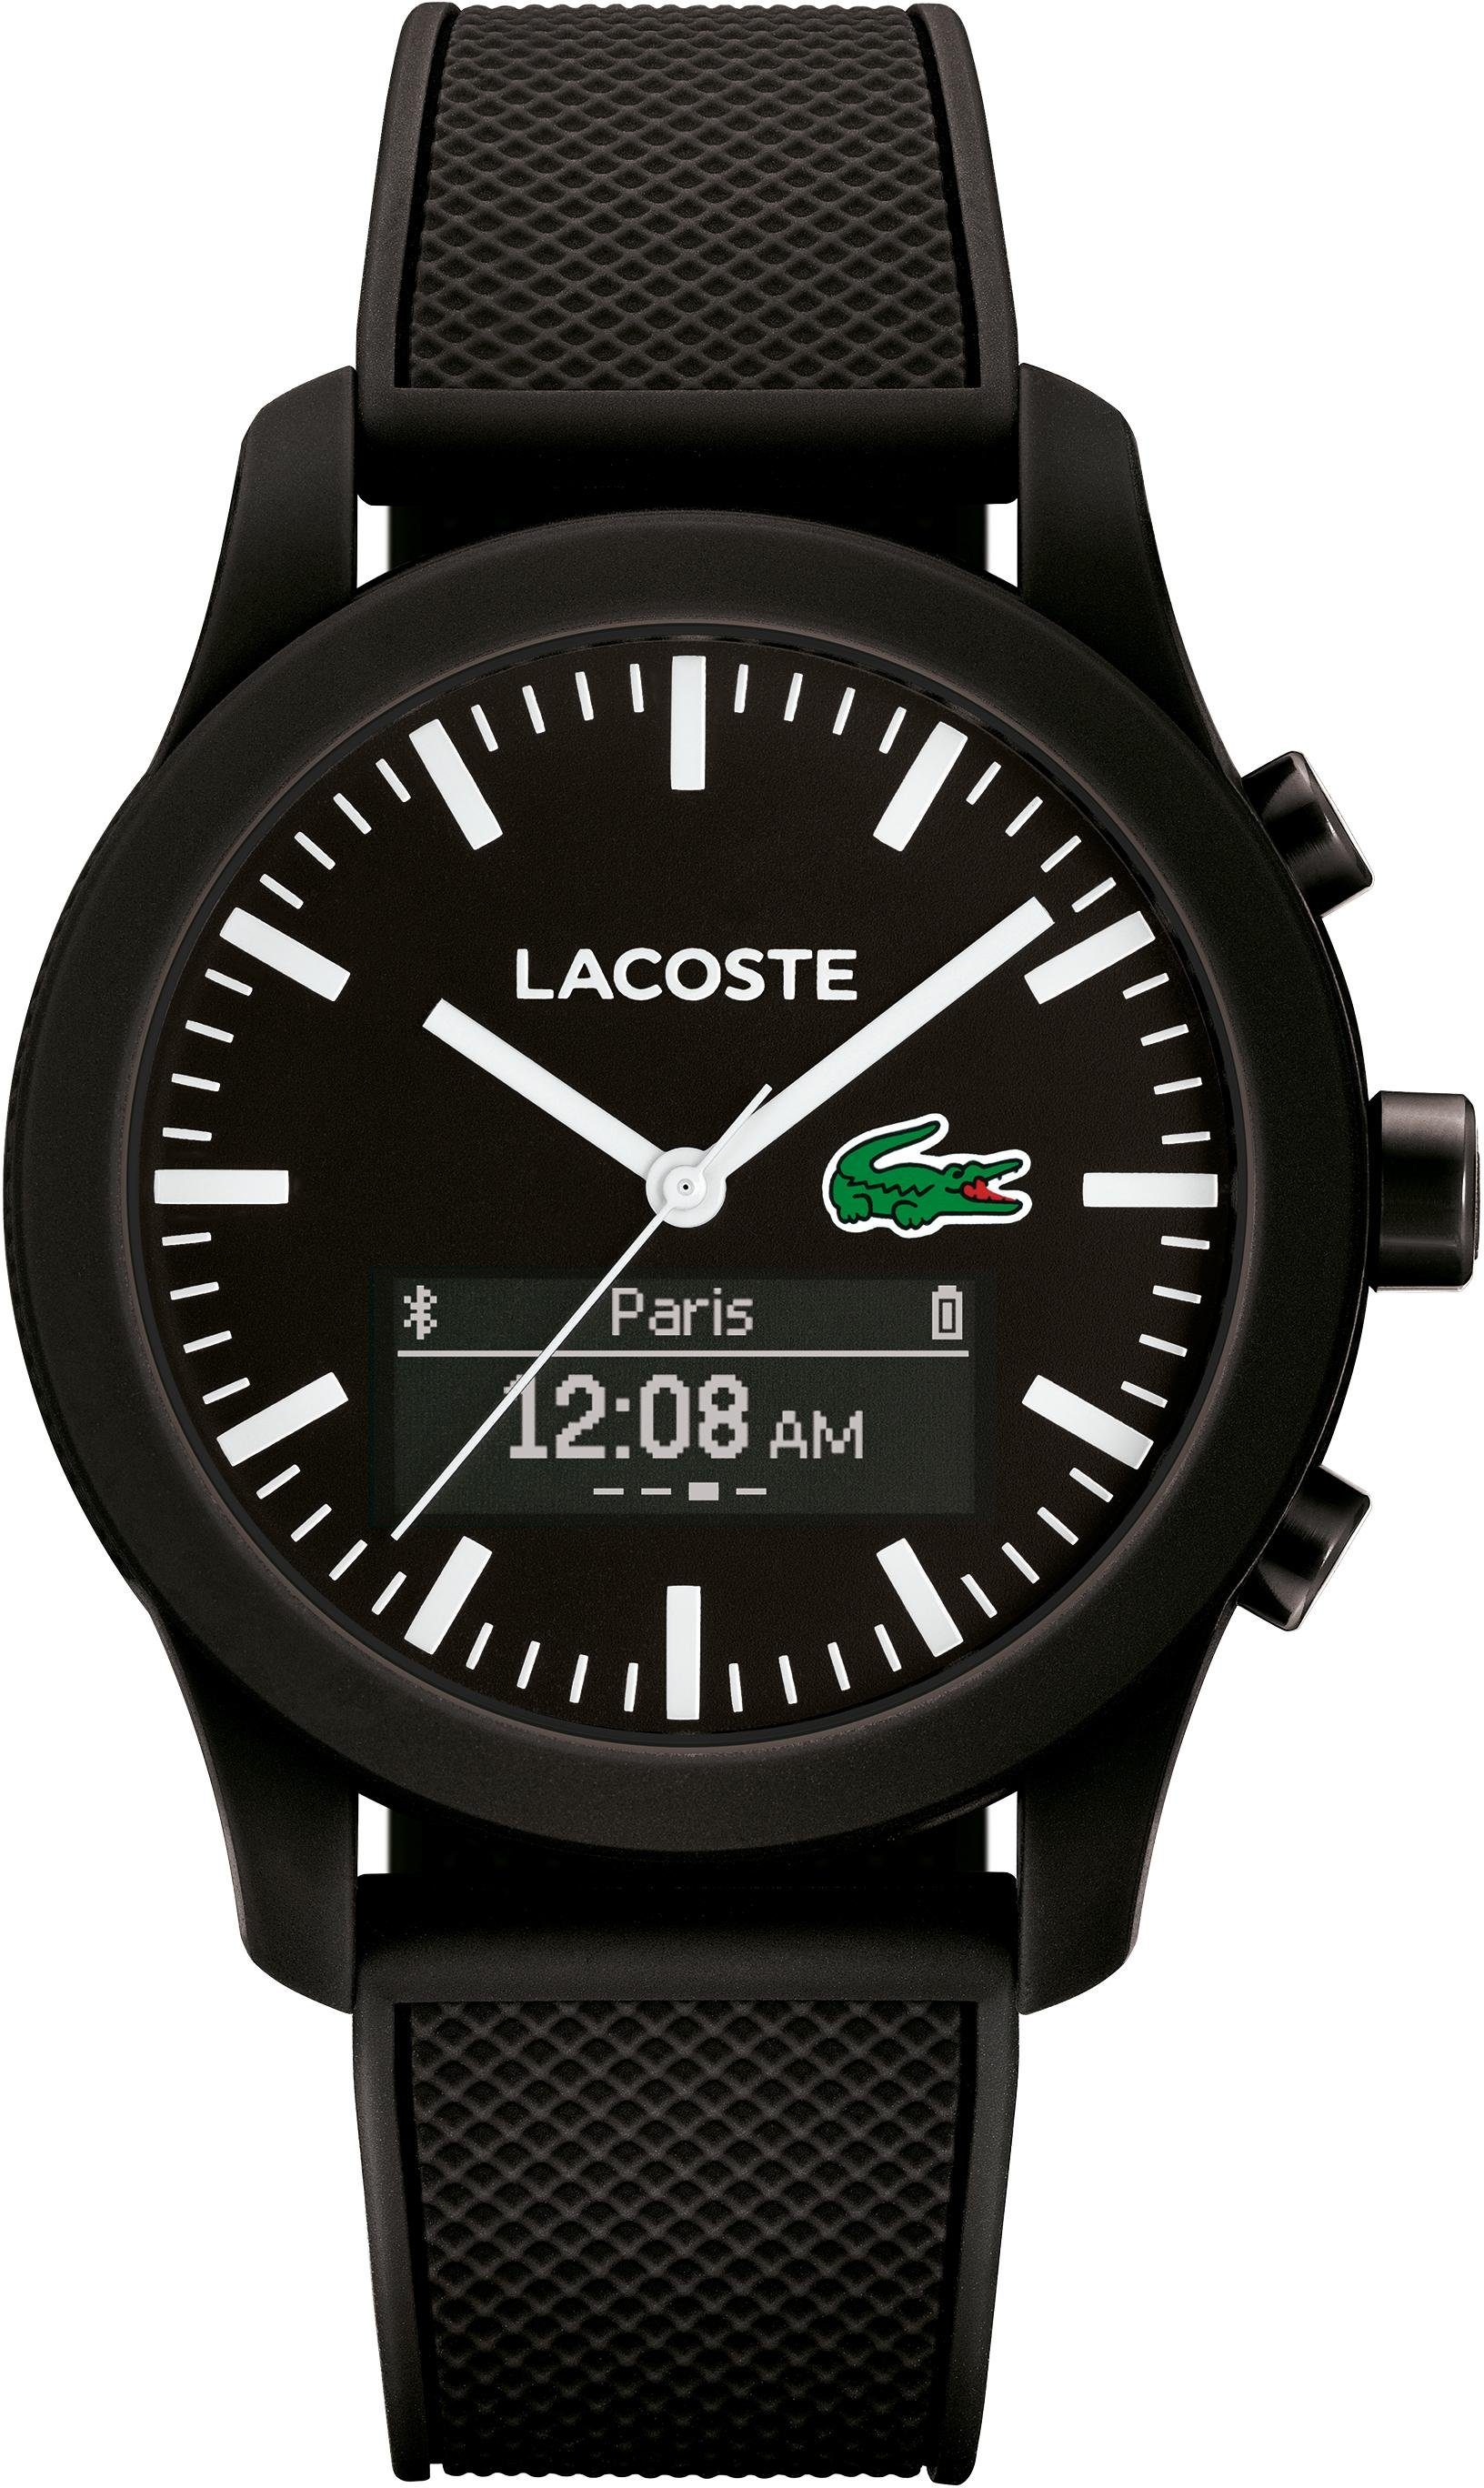 Lacoste Digitaluhr »LACOSTE.12.12 CONTACT, 2010881«